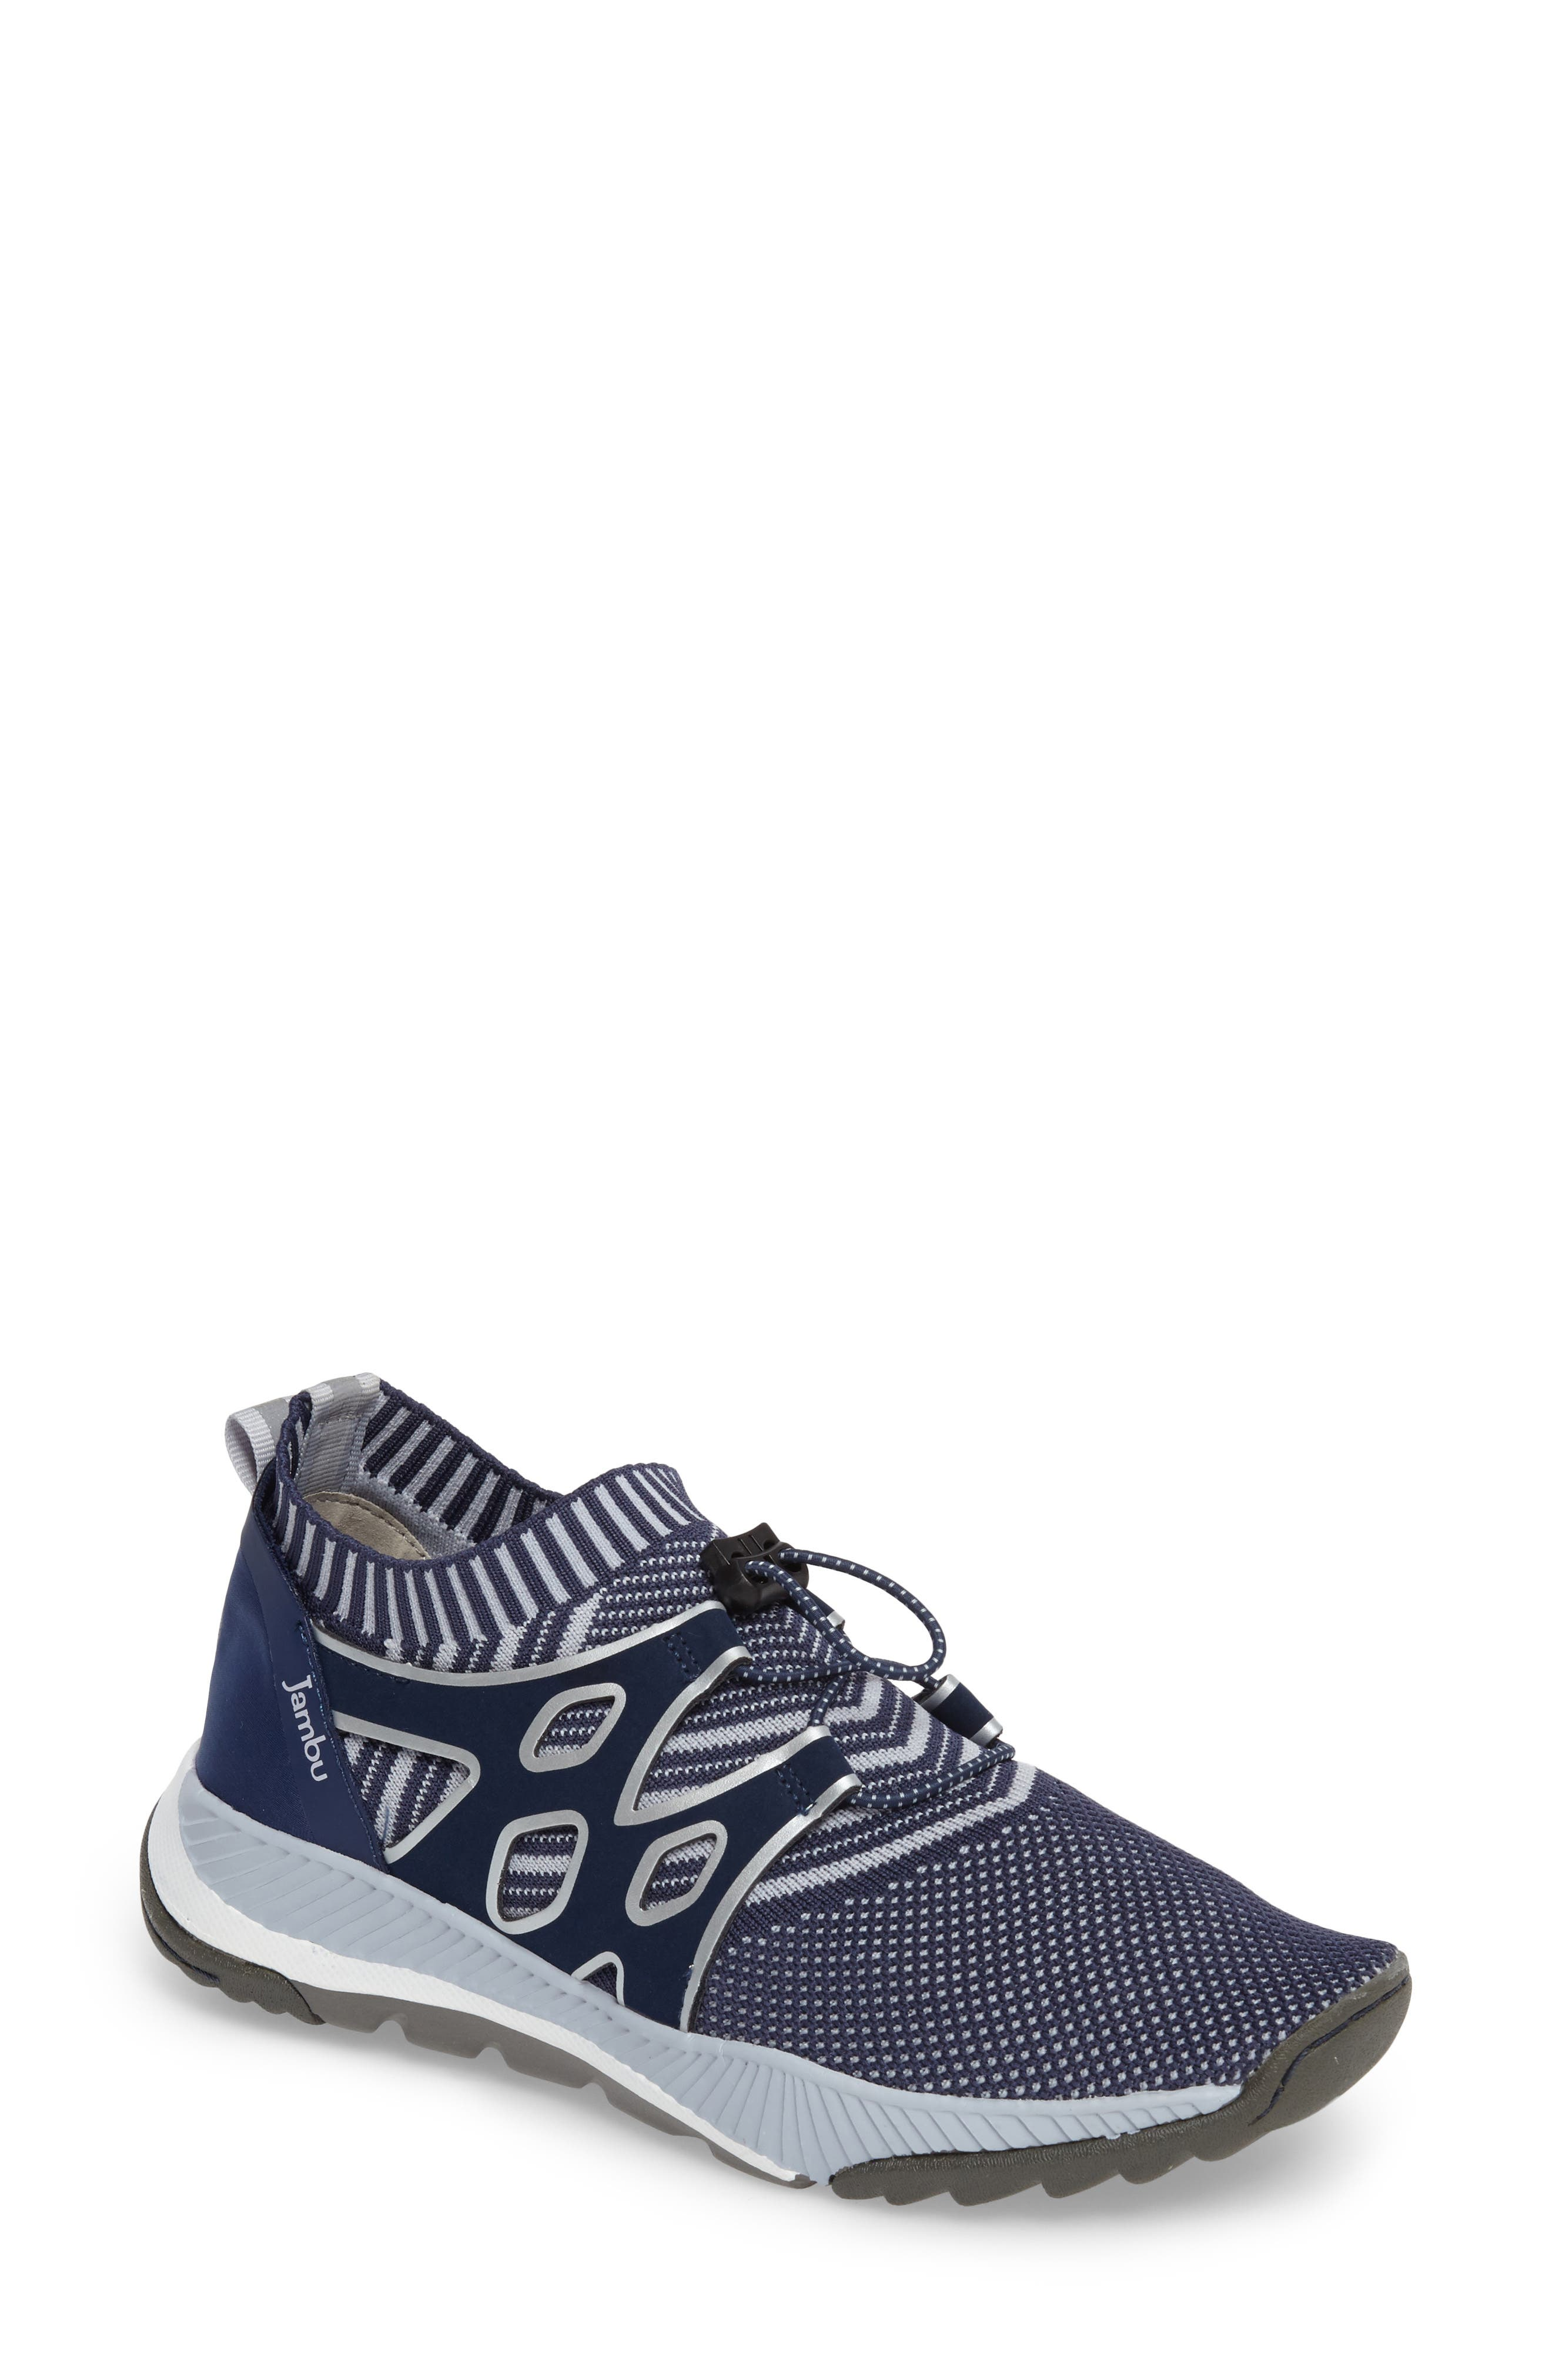 Jackie Sneaker,                             Main thumbnail 1, color,                             Navy Fabric